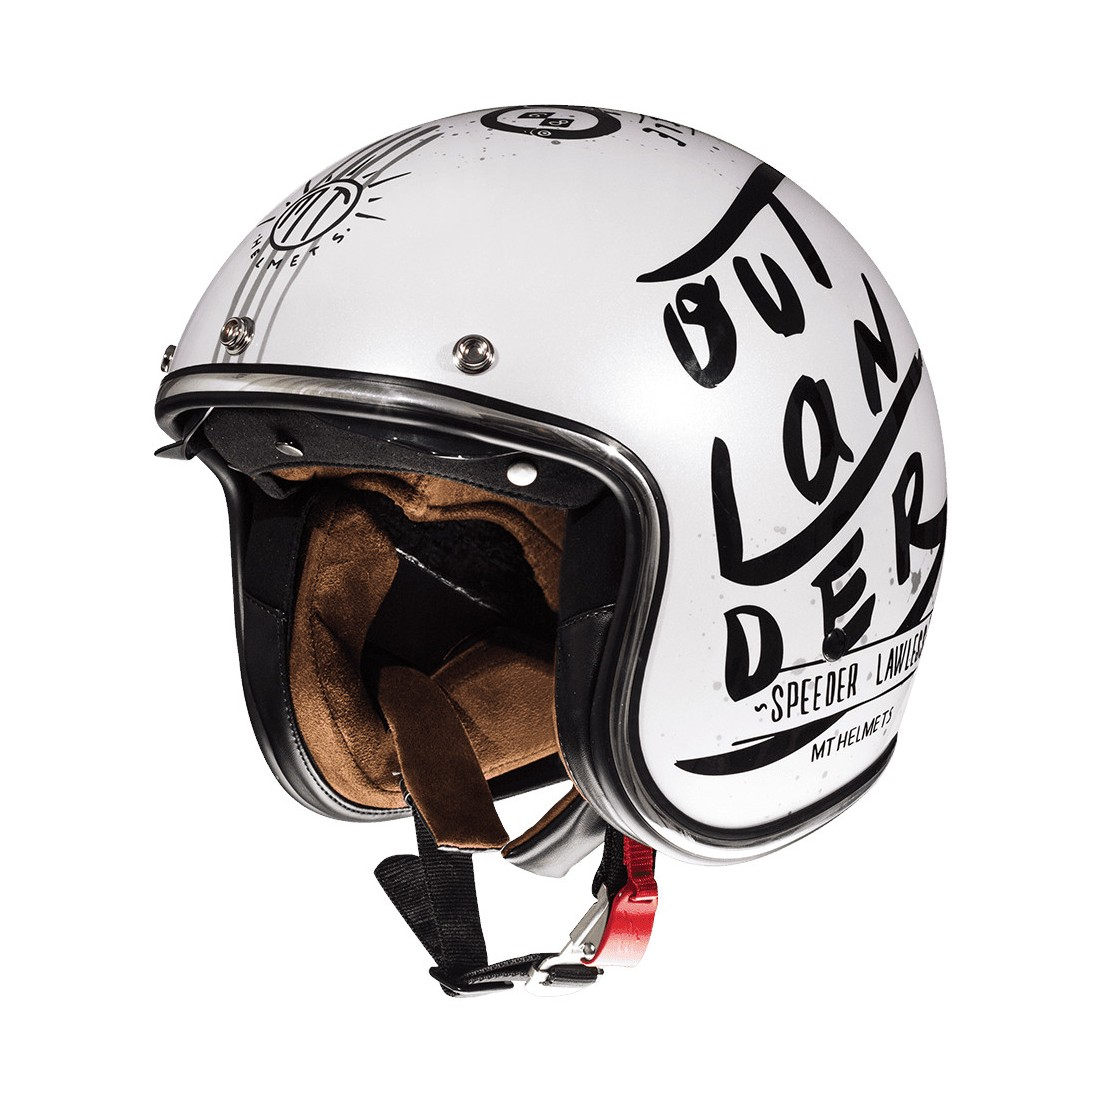 Casco MT OF507SV LE MANS 2 SV OUTLANDER A1 Blanco Perla Brillo TALLA CASCO XS